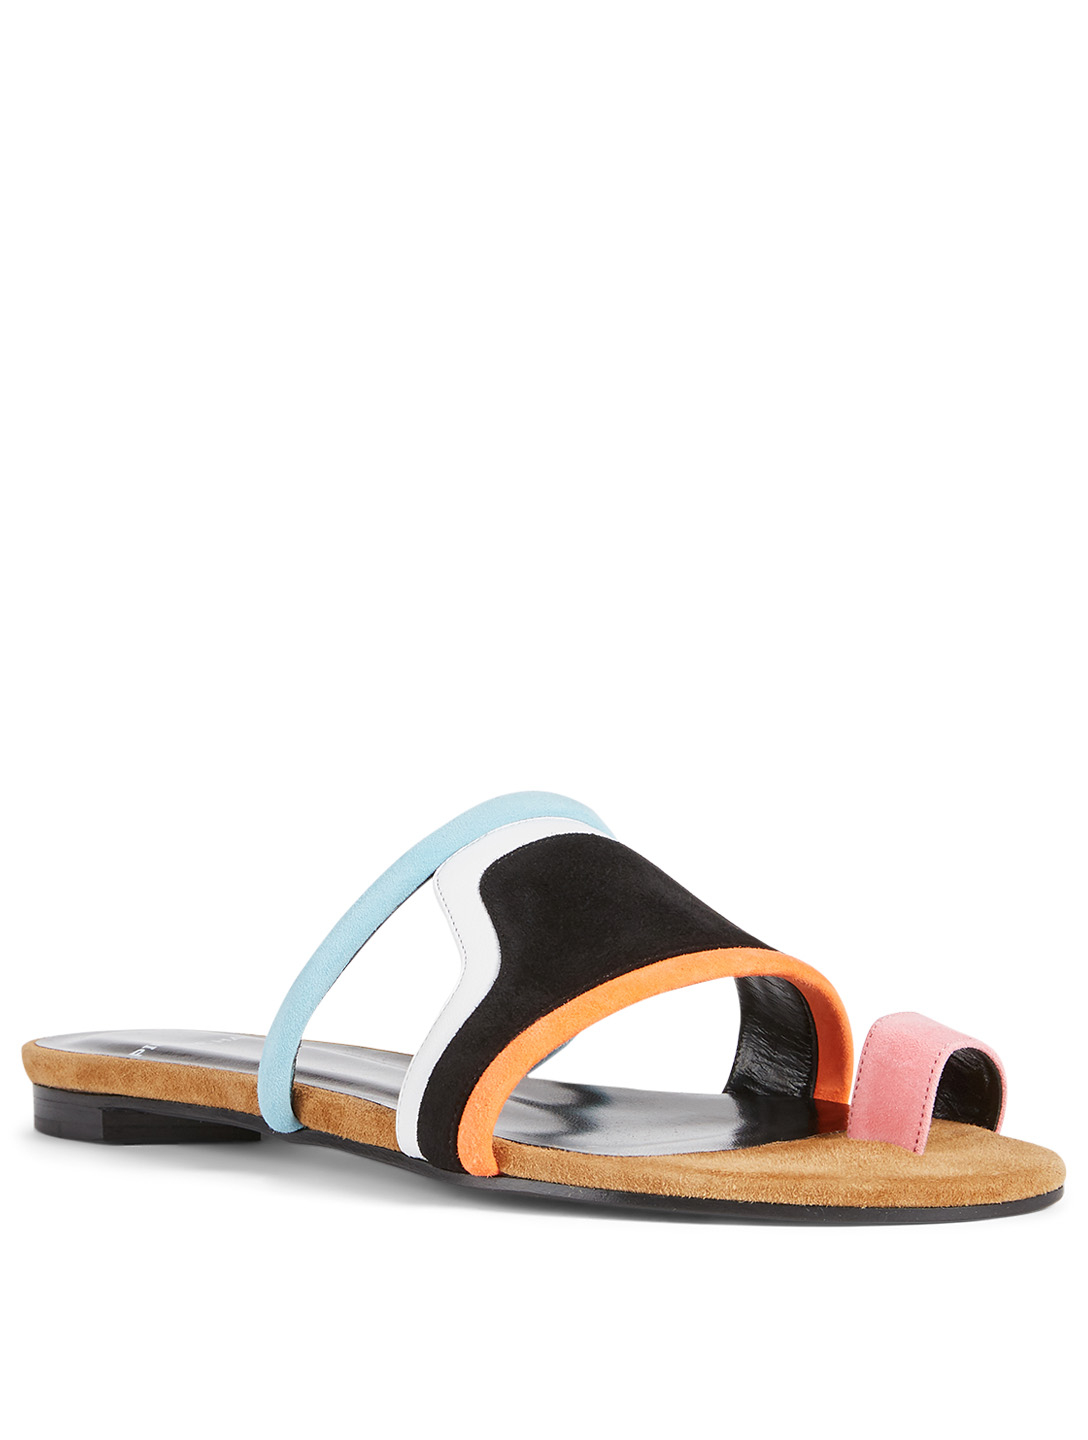 PIERRE HARDY Wave Suede Slide Sandals Women's Black